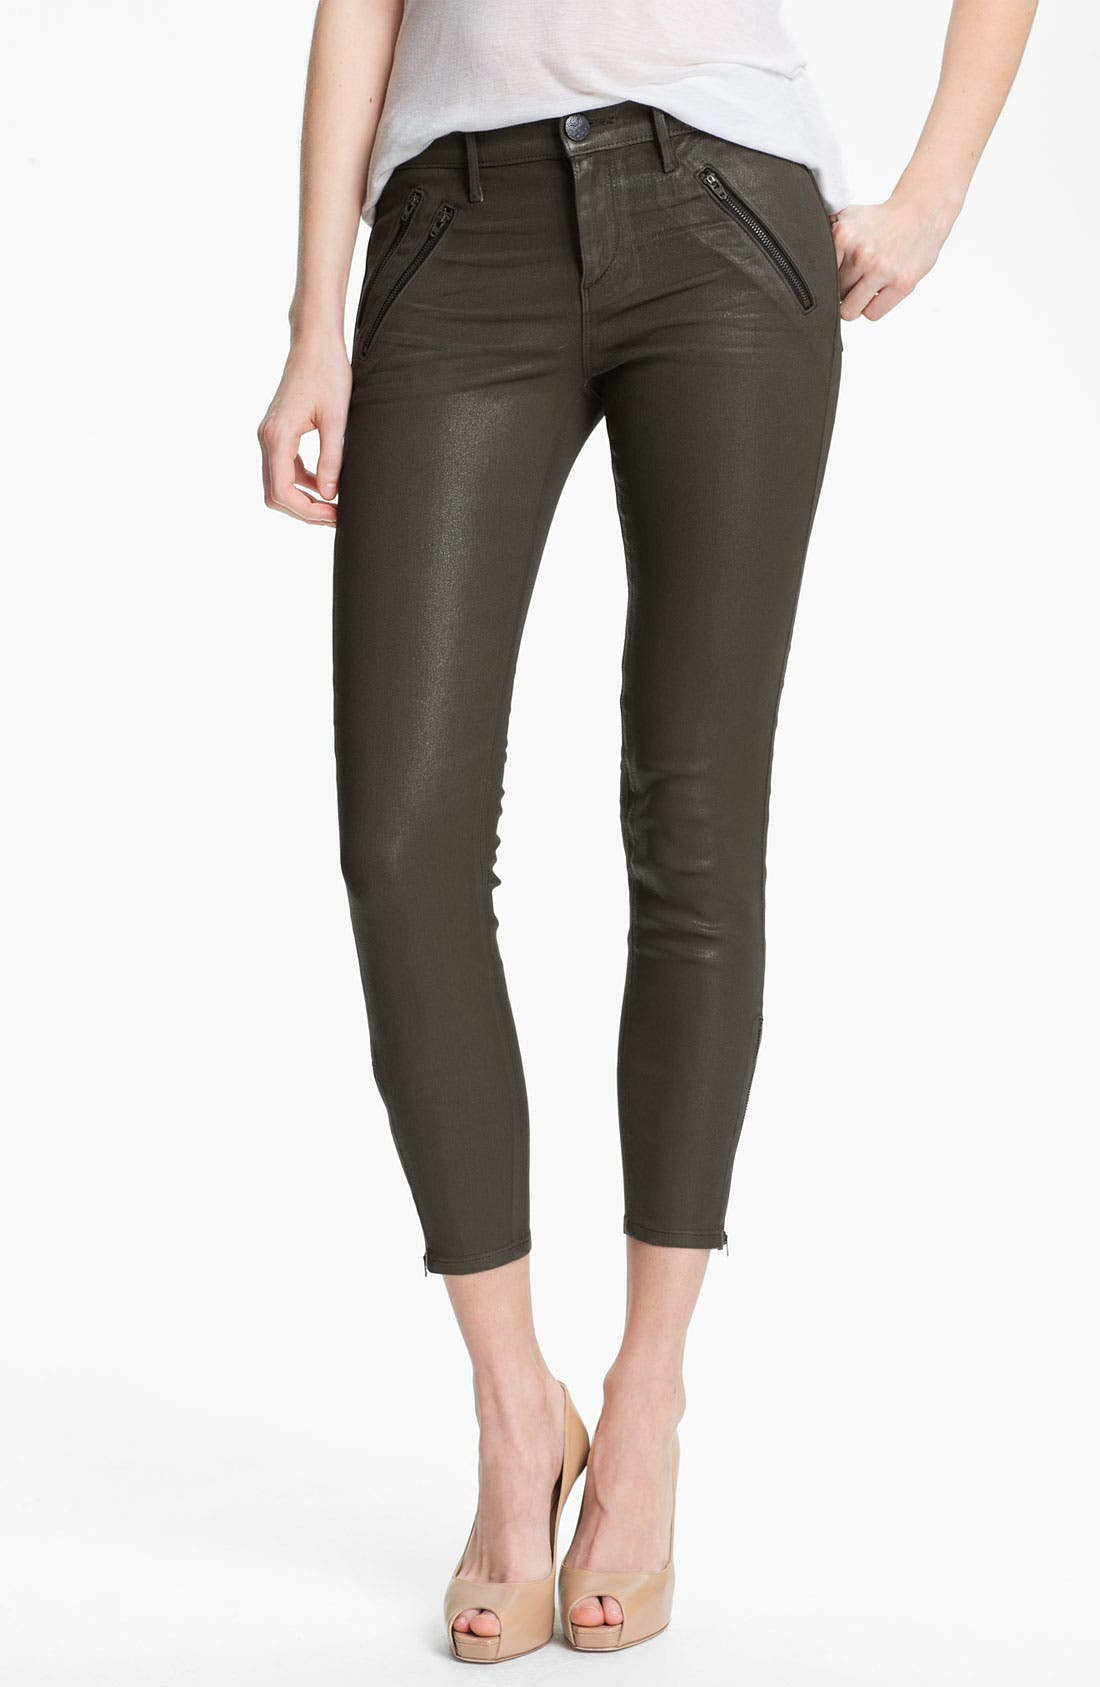 Alternate Image 1 Selected - Habitual 'Colette' Coated Skinny Stretch Jeans